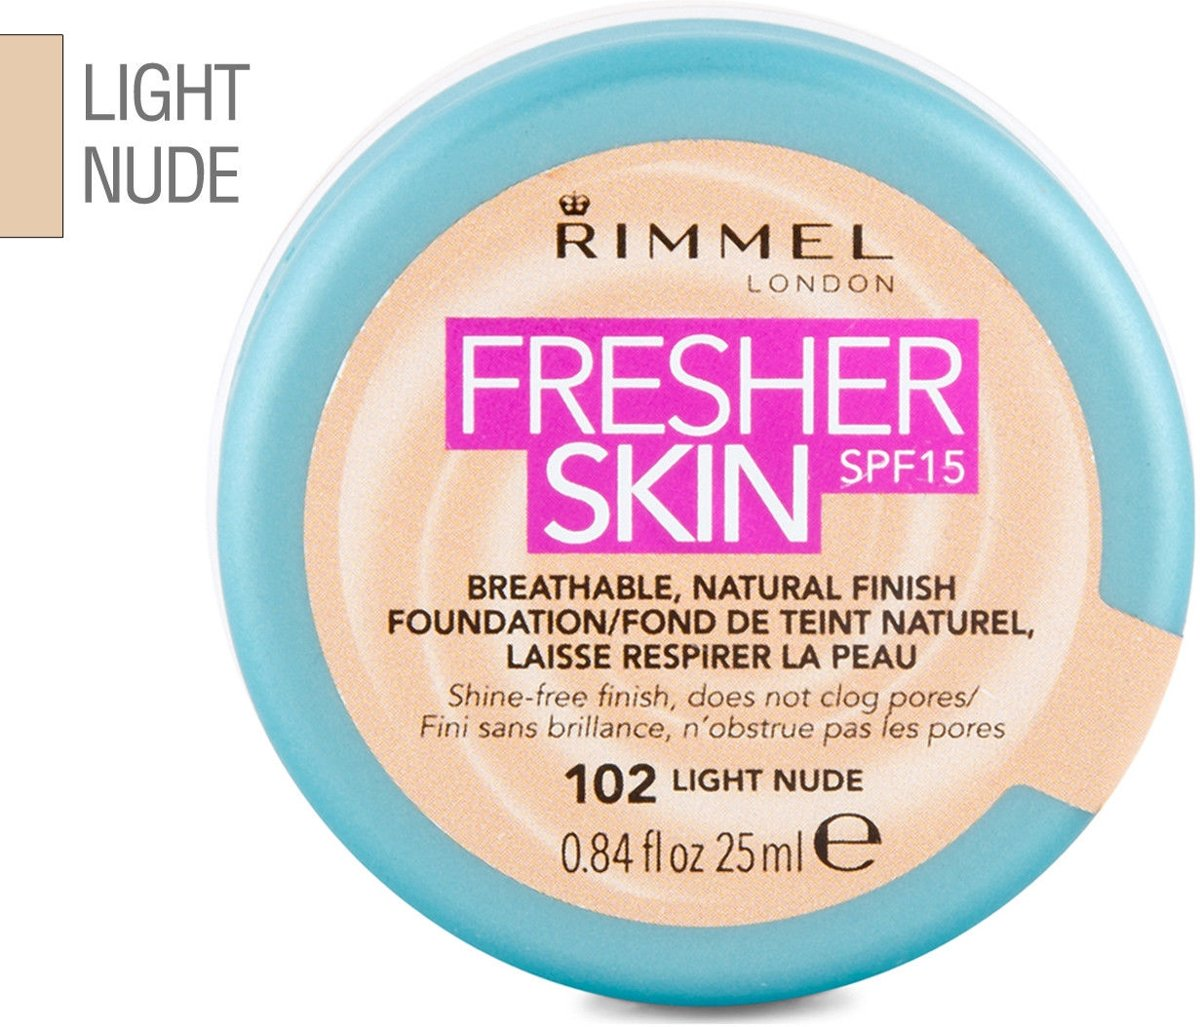 Rimmel Fresher Skin Foundation 102 Light Nude